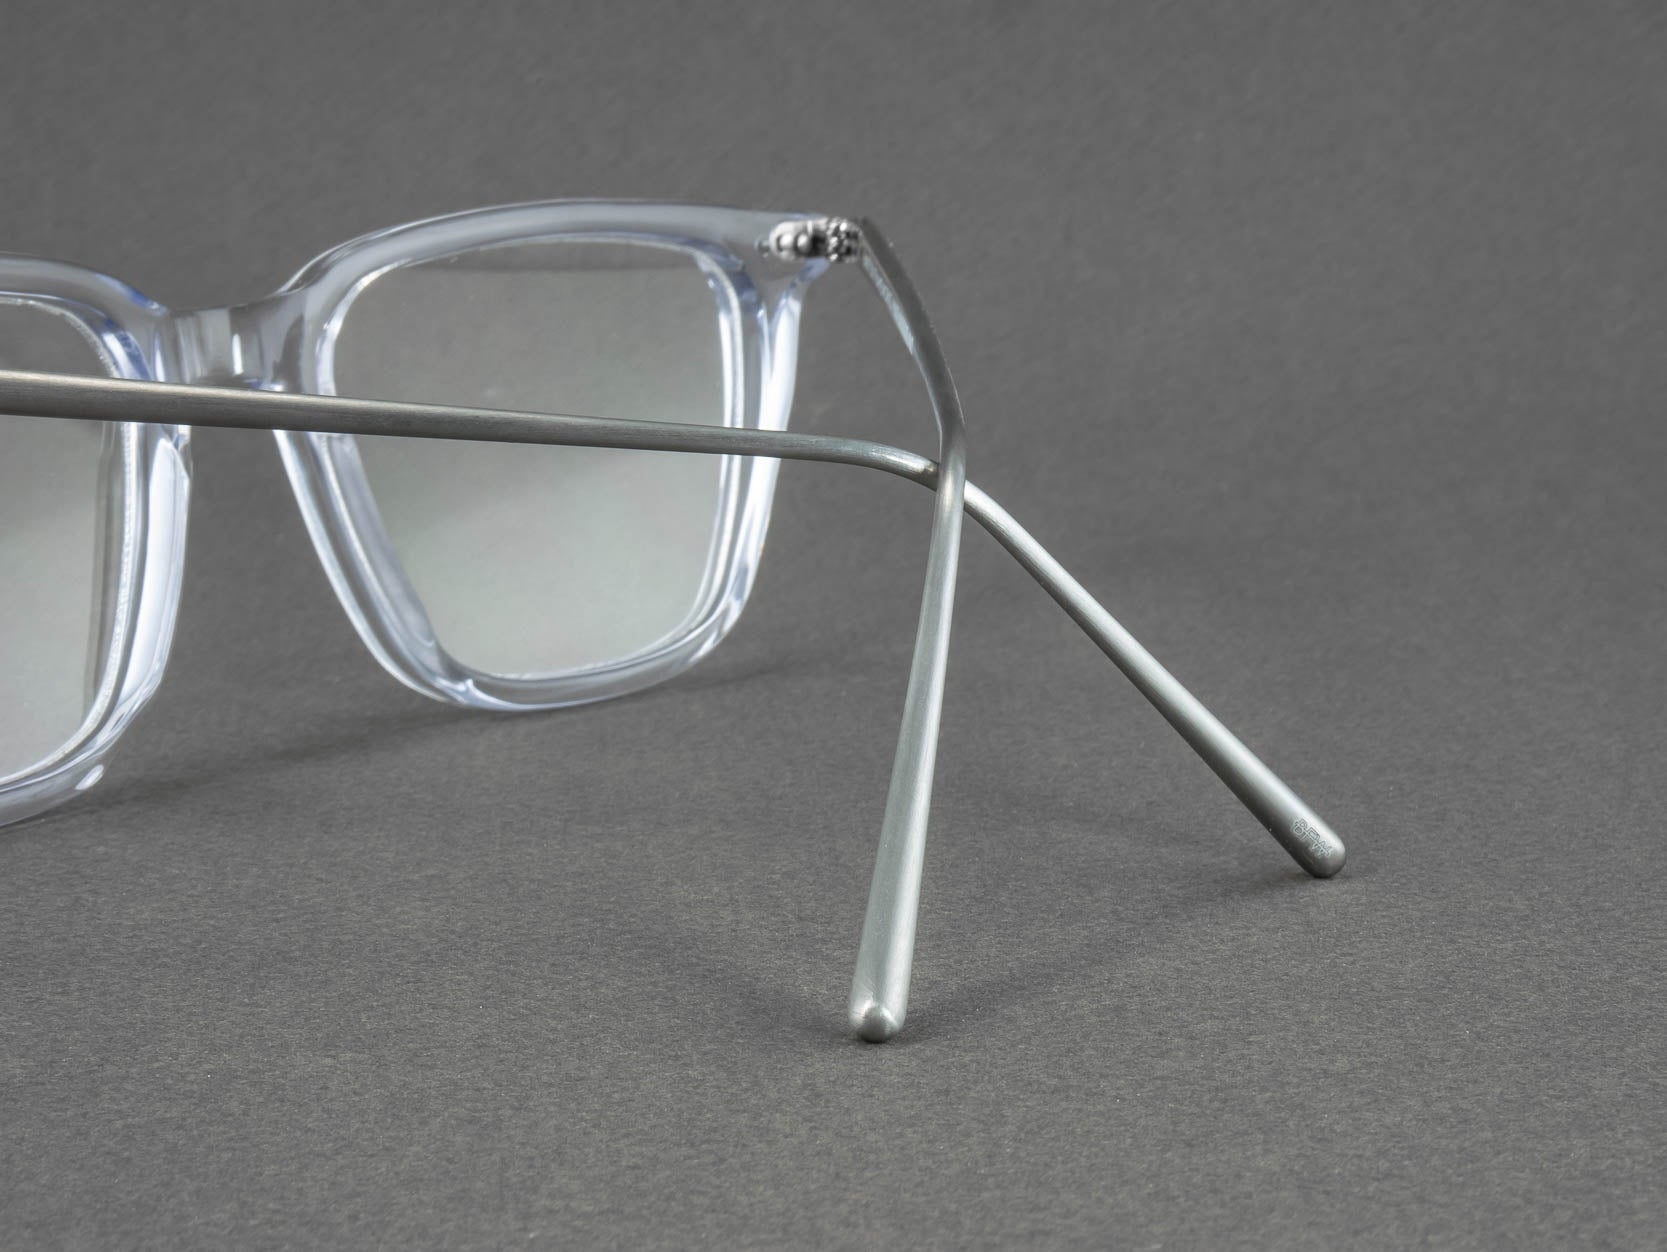 clear frame glasses temple close up